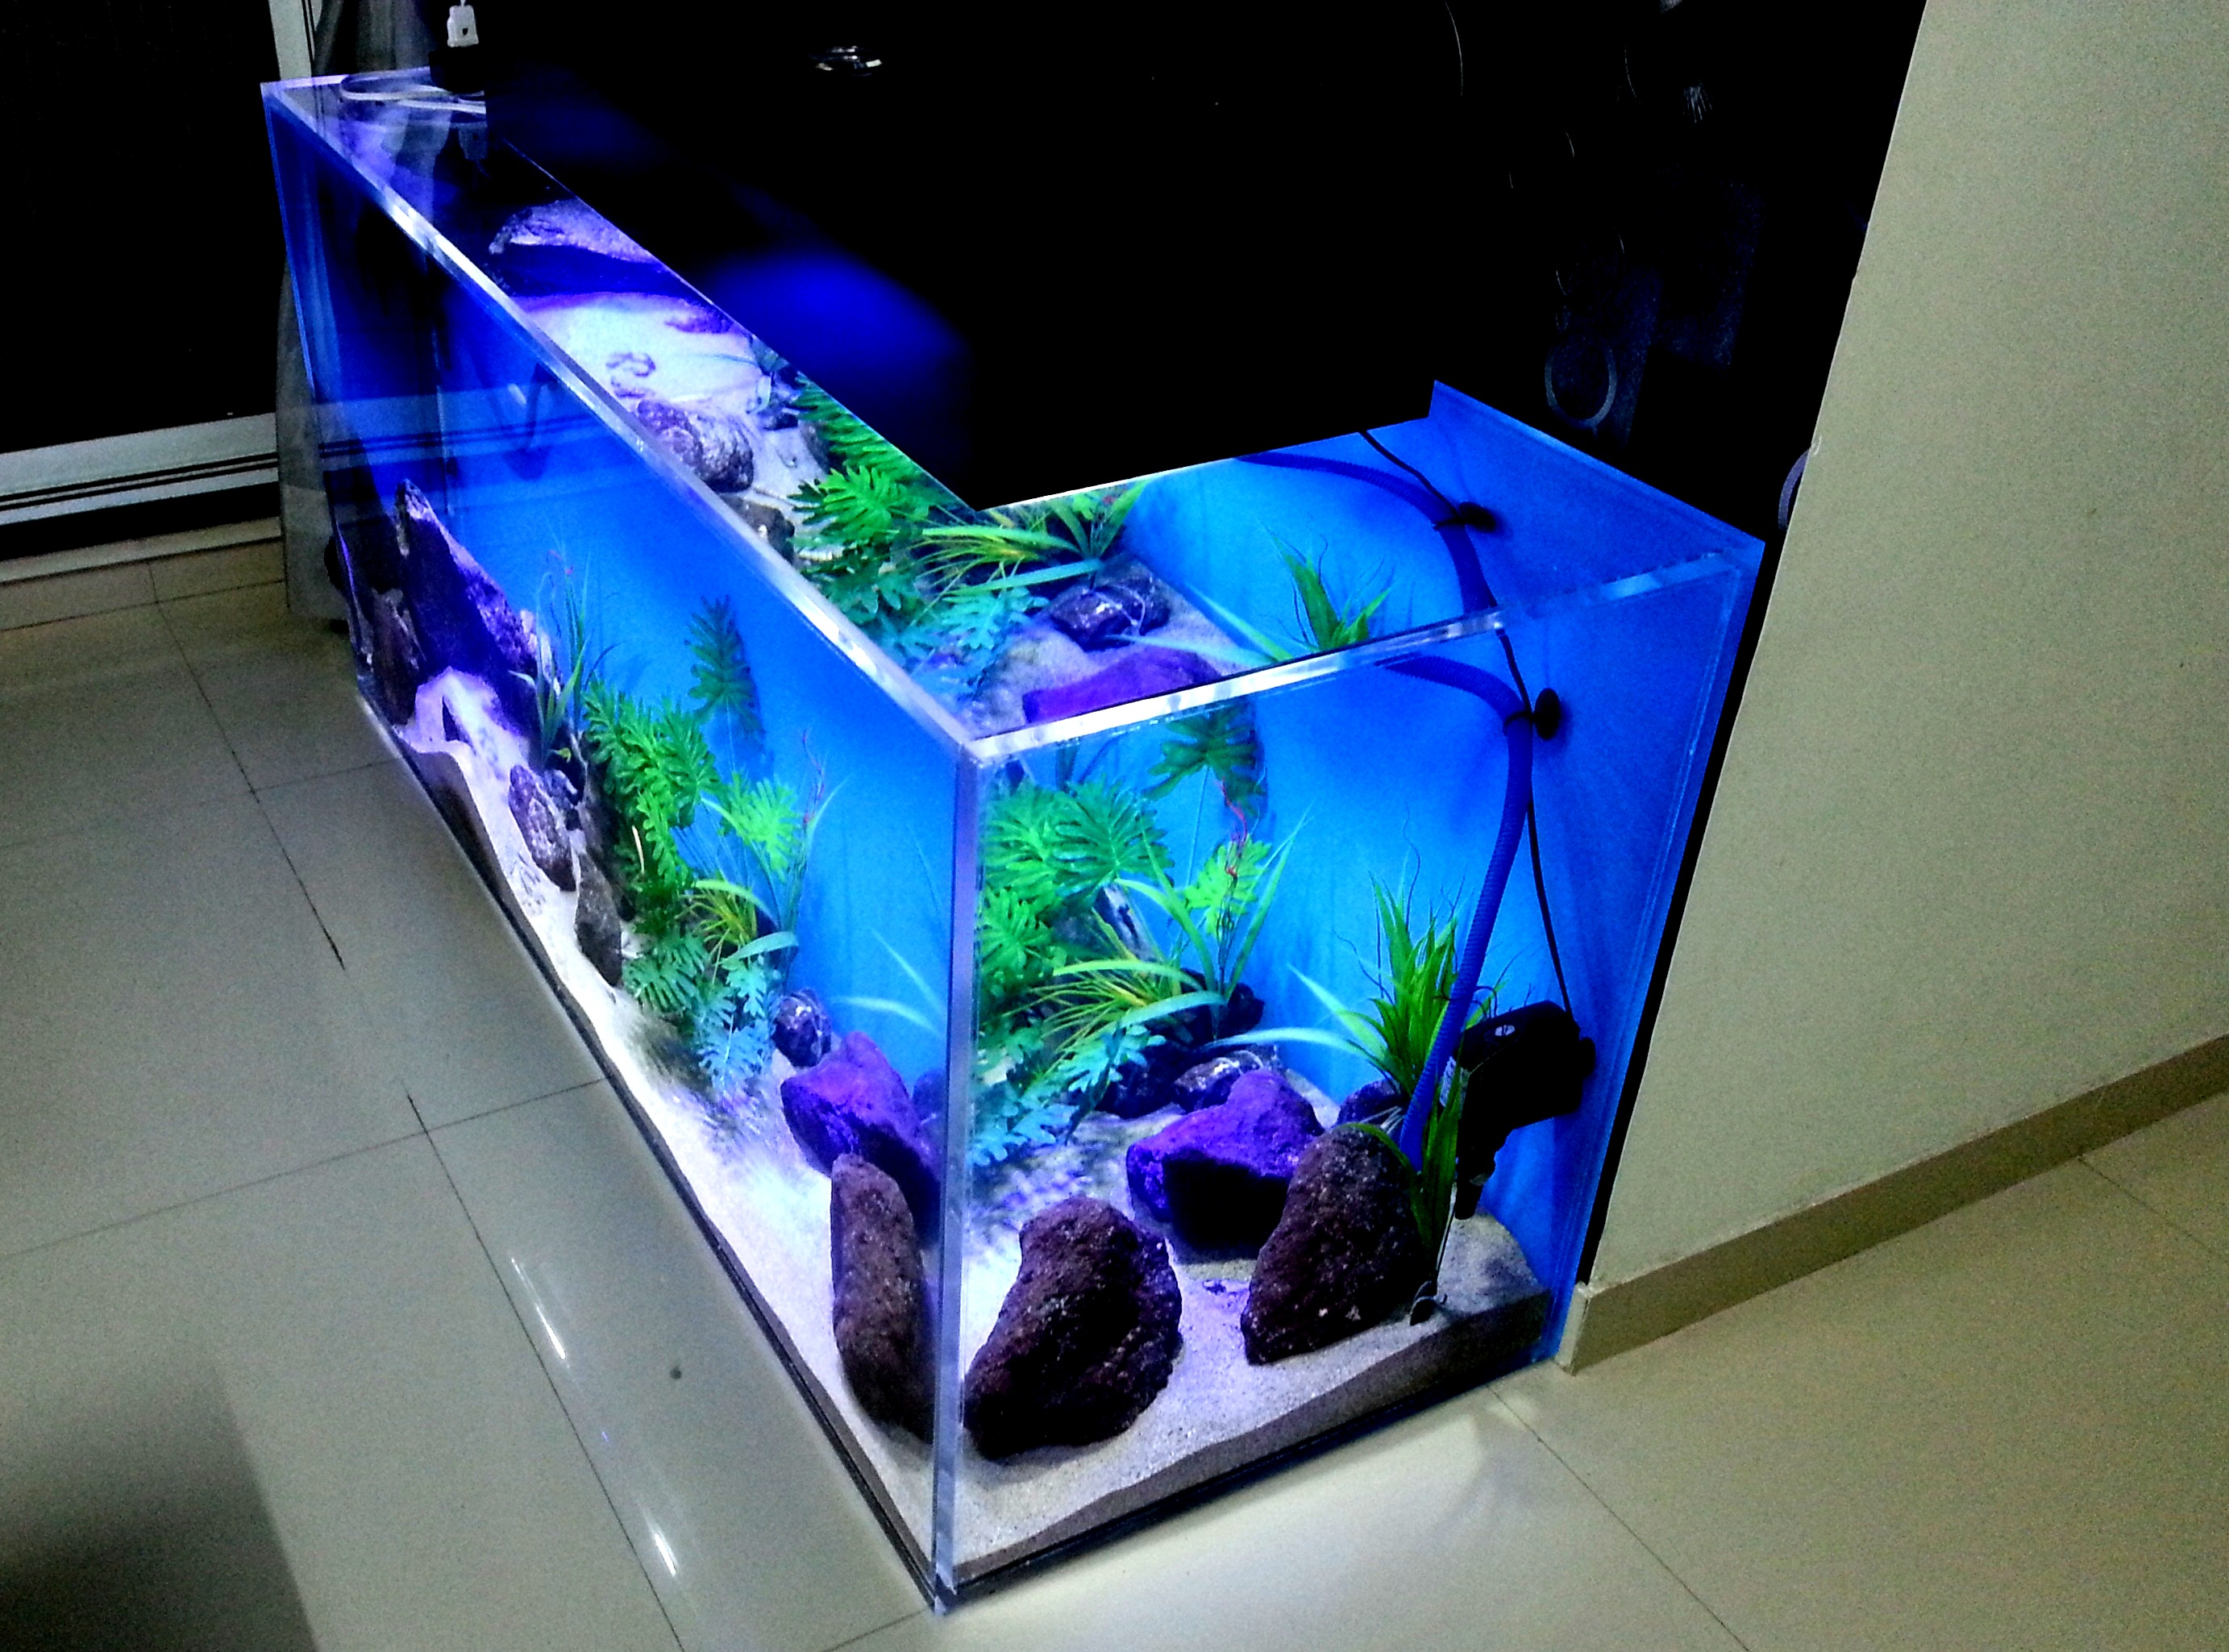 Fish aquarium price india - Resonating Simplicity Custom Aquariums